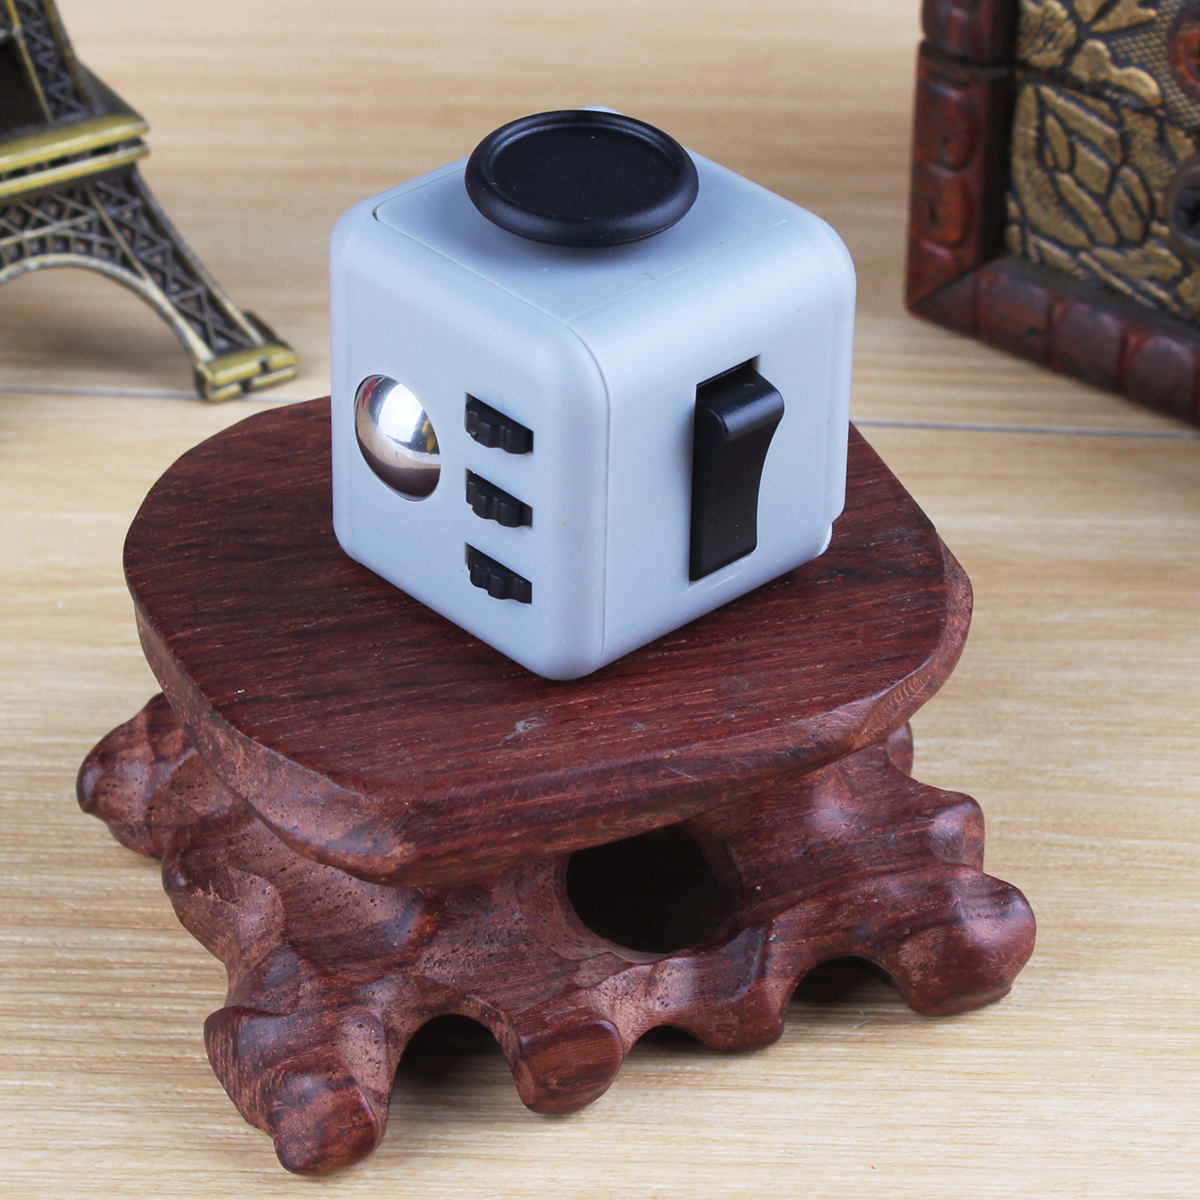 Stress Relief Toys For Adults : In stock adults children cube a vinyl desk toy stress